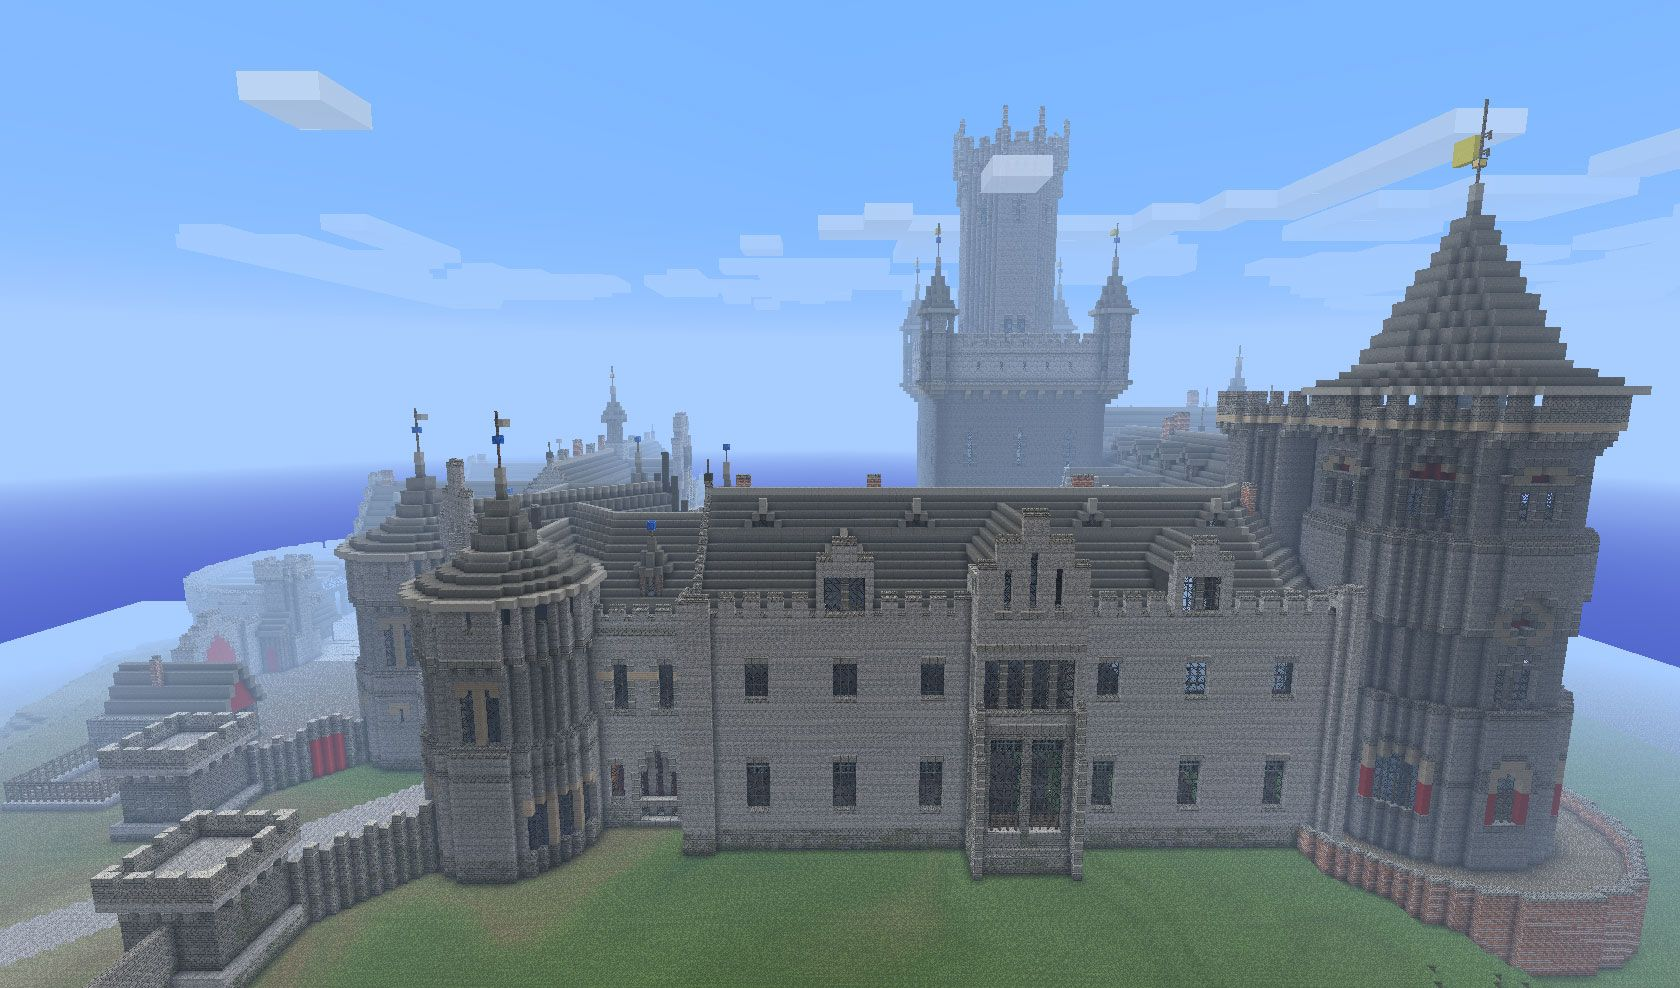 minecraft castles   Kings Castle   Minecraft Building Inc. minecraft castles   Kings Castle   Minecraft Building Inc